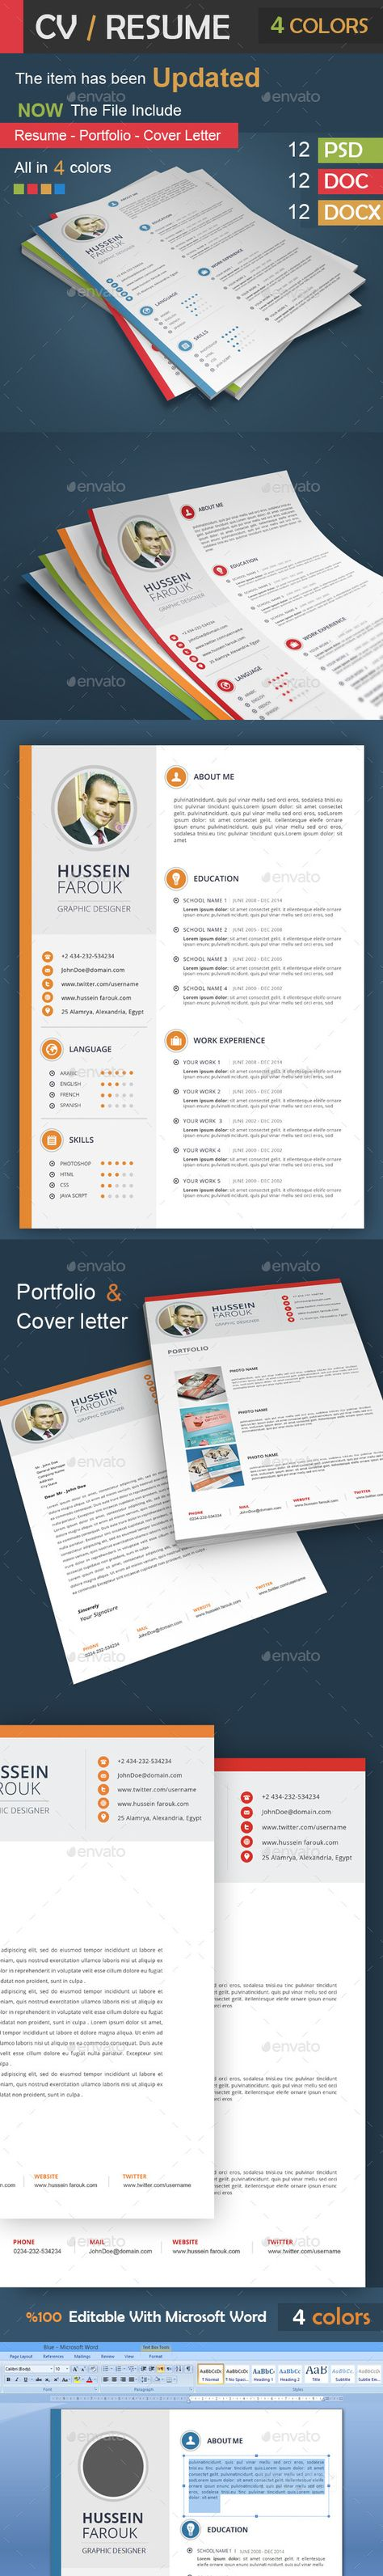 Resume Resume cover letter template Resume